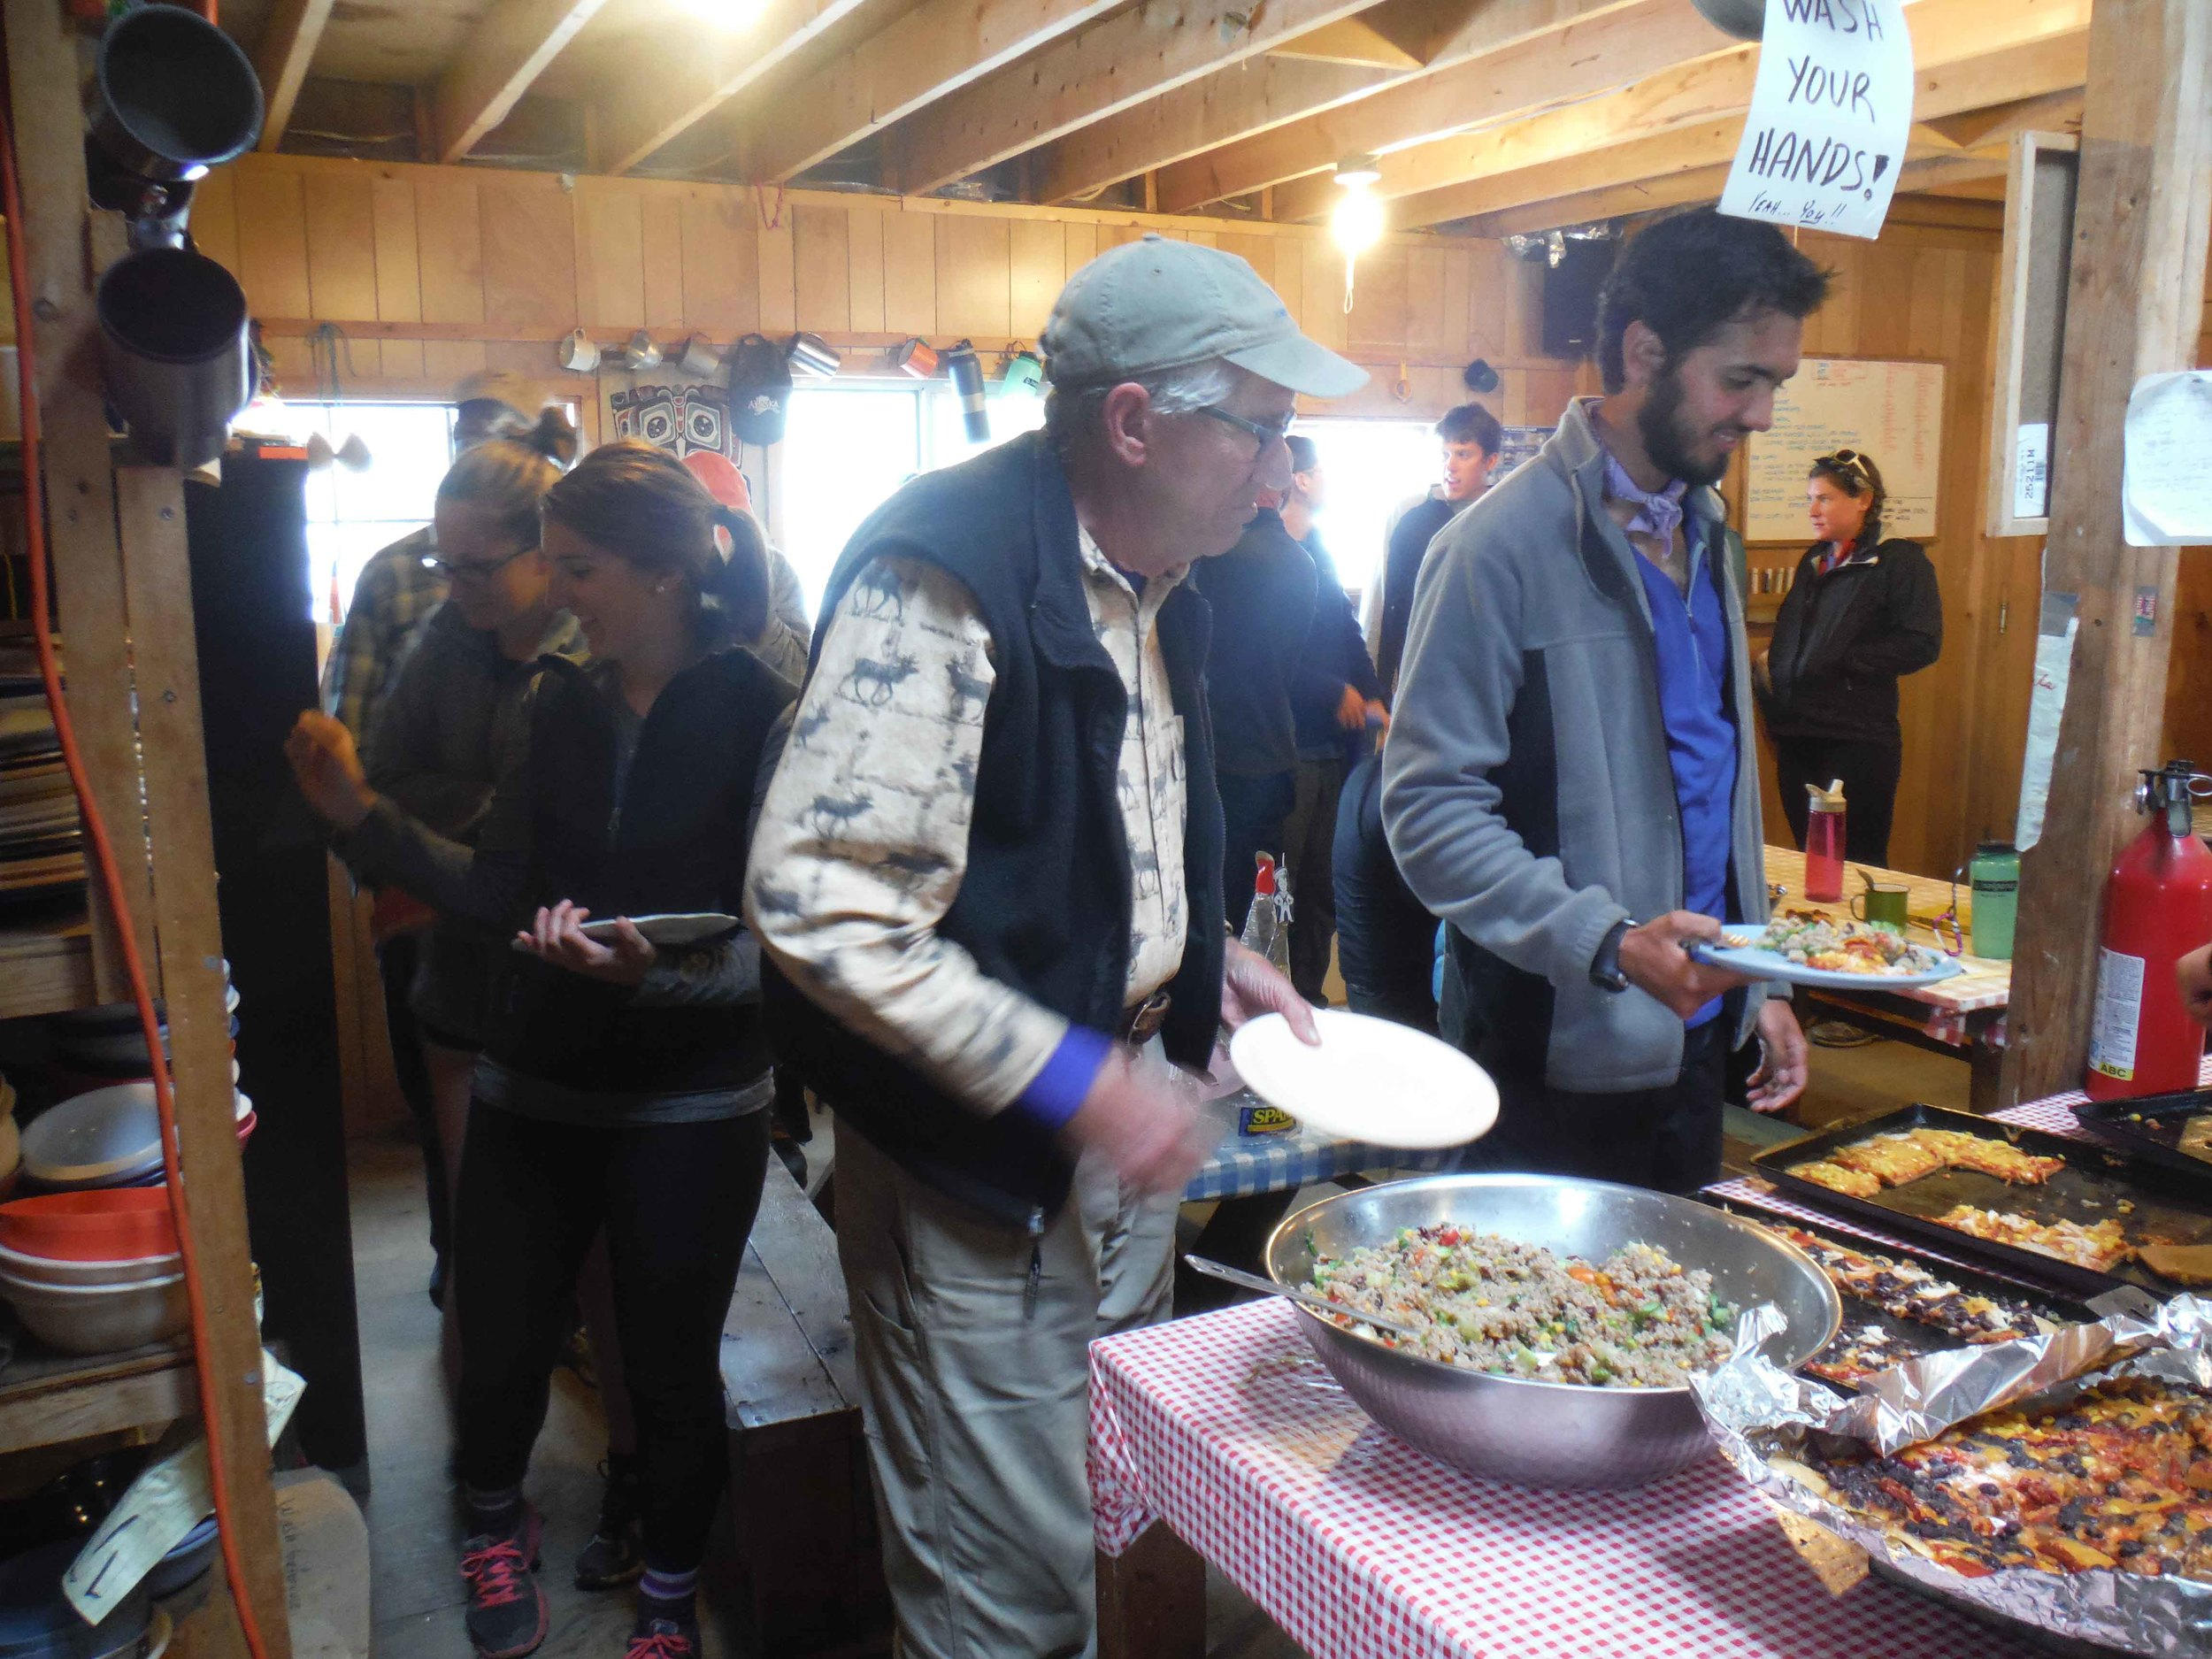 Jay Beeman and Dr. Bill Isherwood start the food line that goes through the cook shack and out the door. Photo by Sarah Bouckoms